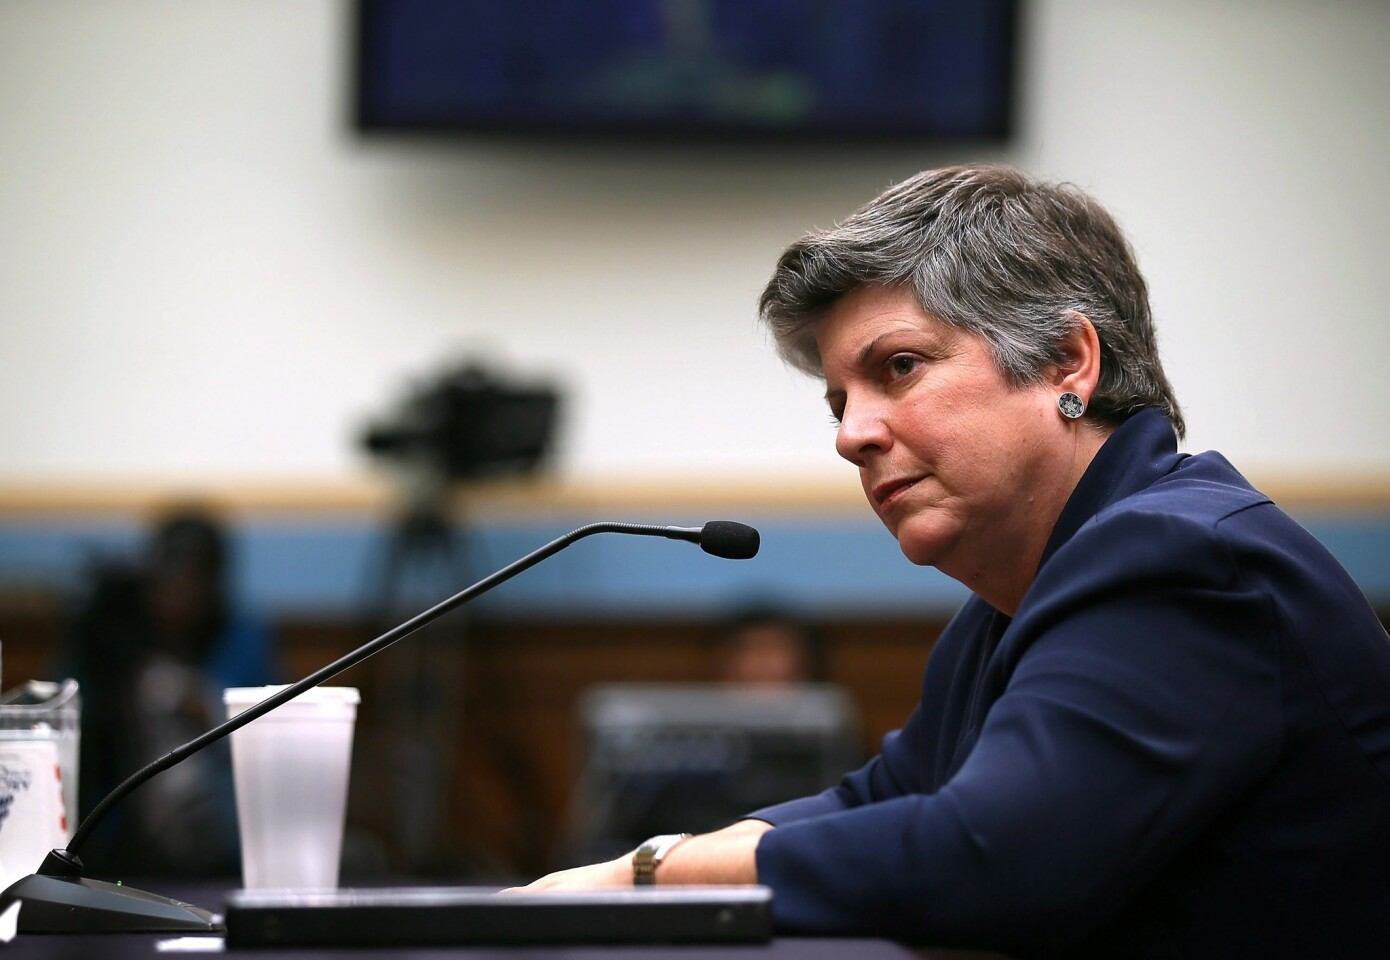 Secretary of Homeland Security Janet Napolitano announced her resignation in July 2013, intending to serve as president of the University of California system. She had served at her post since 2009, and previously was governor of Arizona from 2003 to 2009.